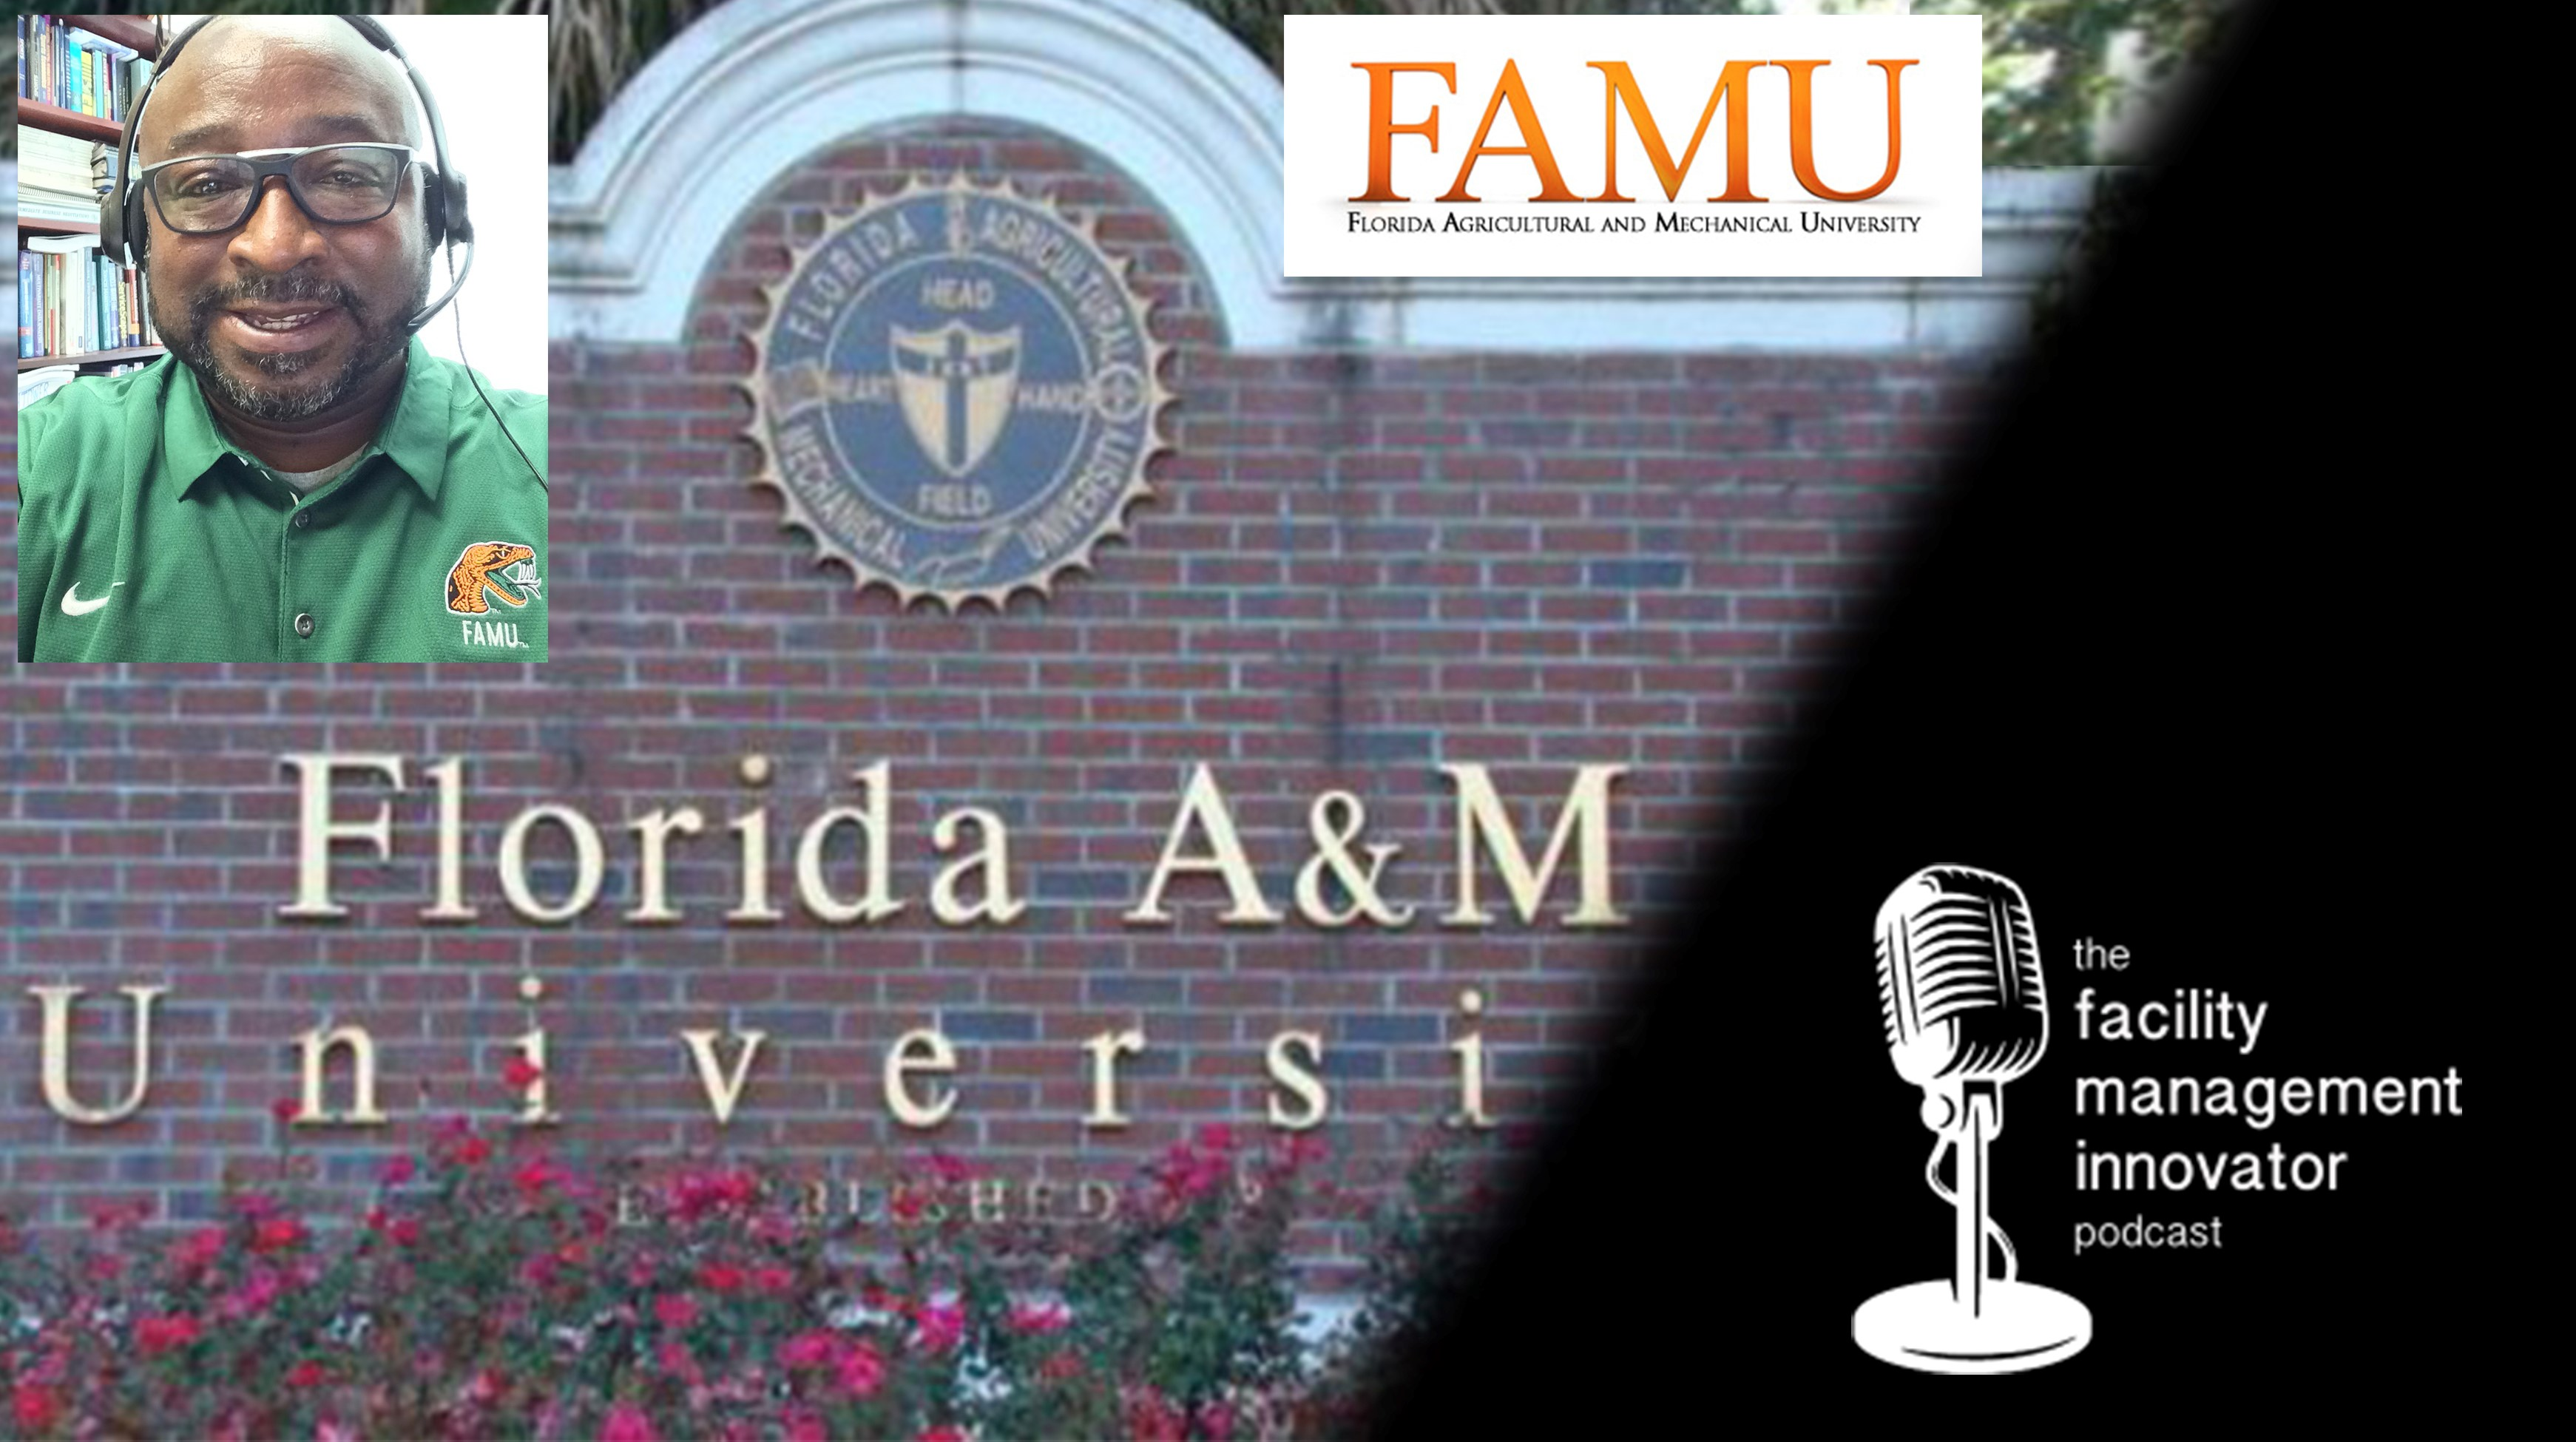 Ep. 72: Higher Education Programs in FM and Marketing | Dr. Roscoe Hightower - FAMU